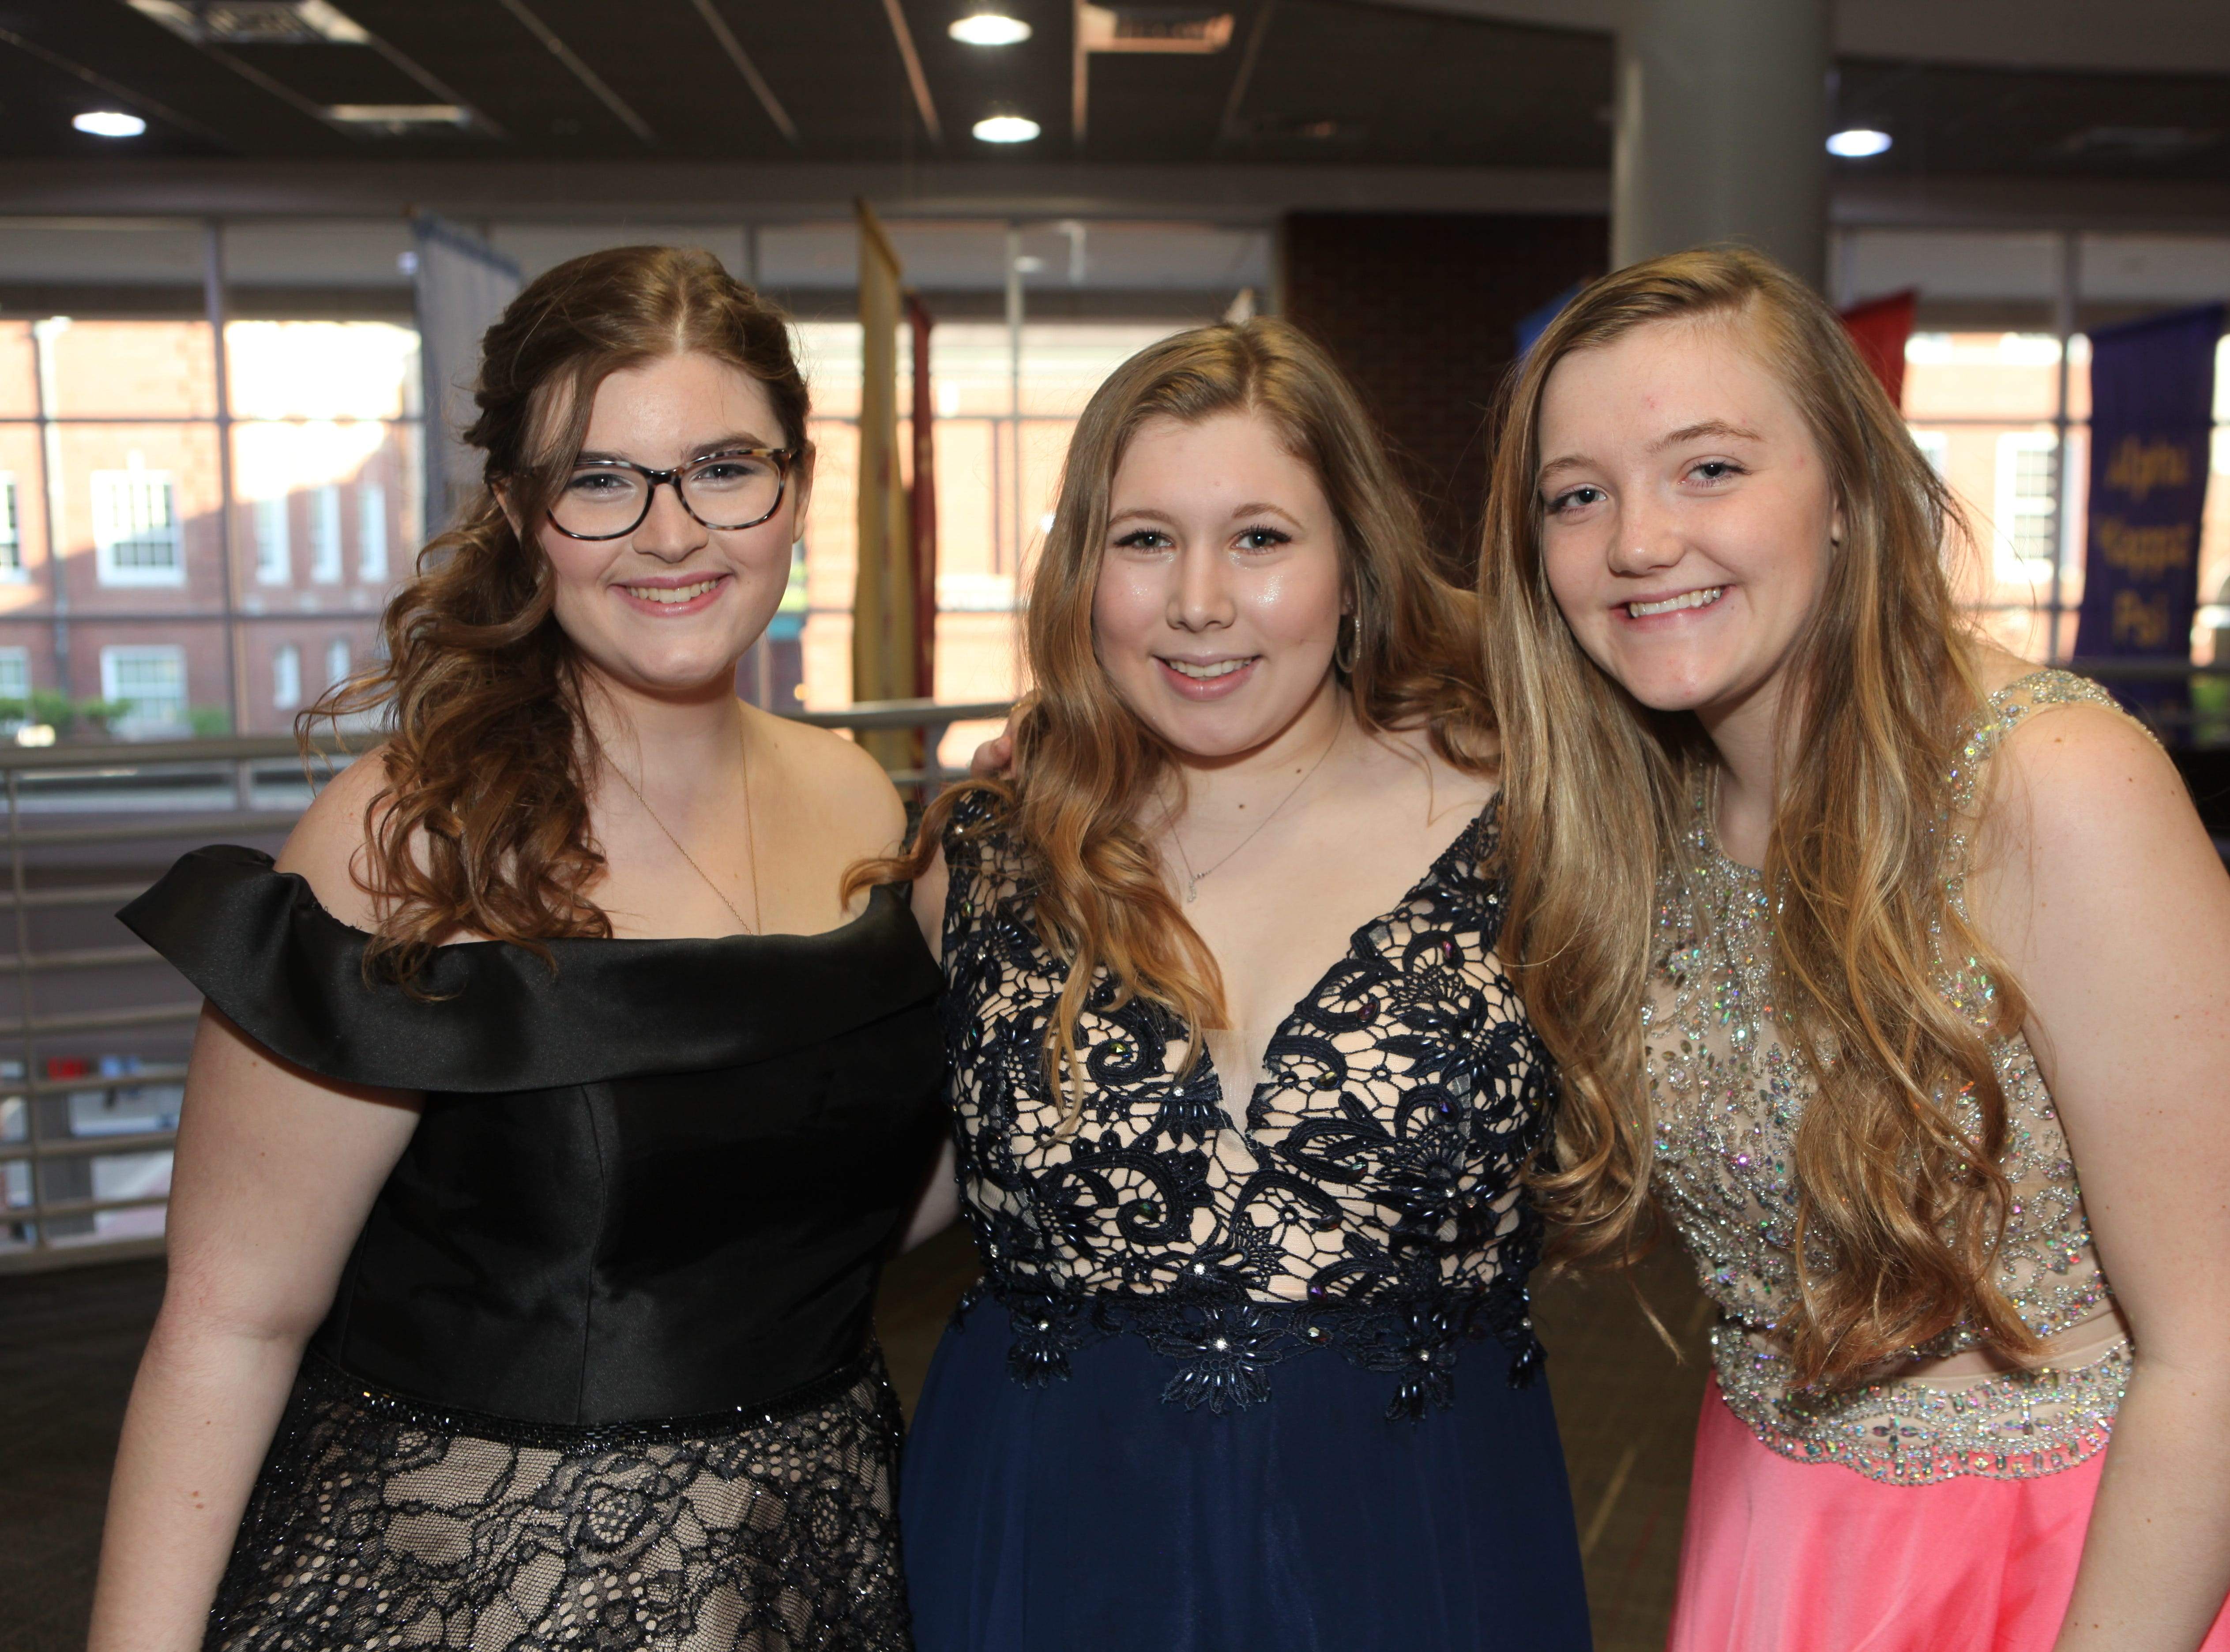 Catherine Sheffield, Emma Williams and Kaitlyn Clayman at the Middle College 2019 prom at the APSU Ballroom on Friday, April 26, 2019.